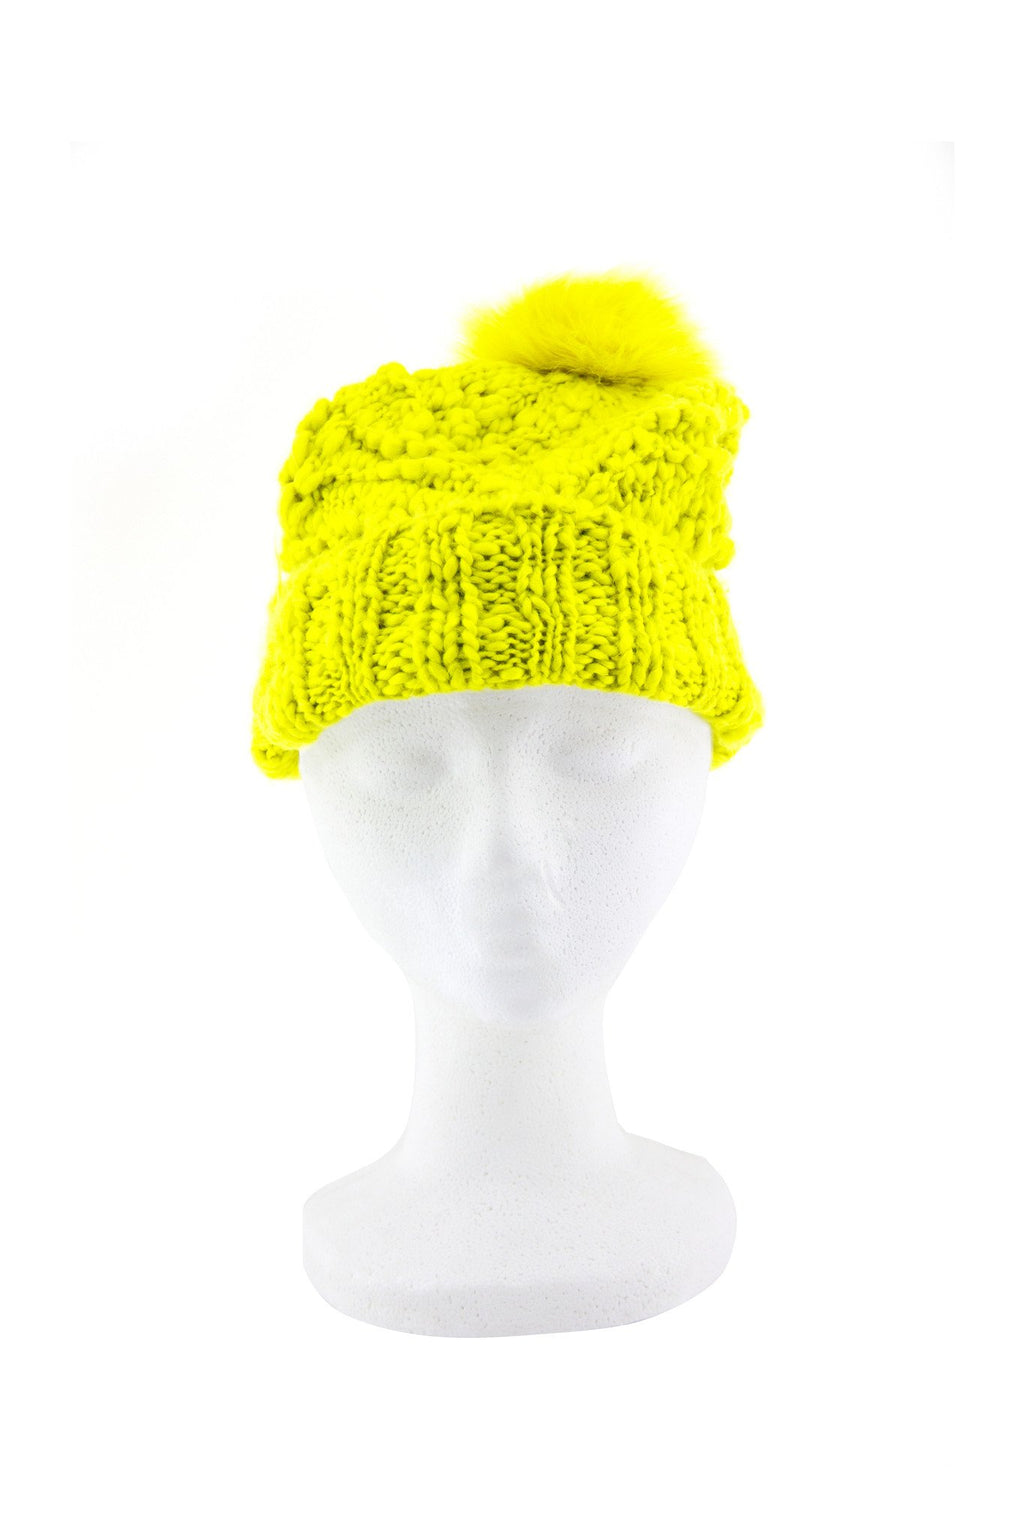 FUR TOP BEANIE - Lime - Haute & Rebellious